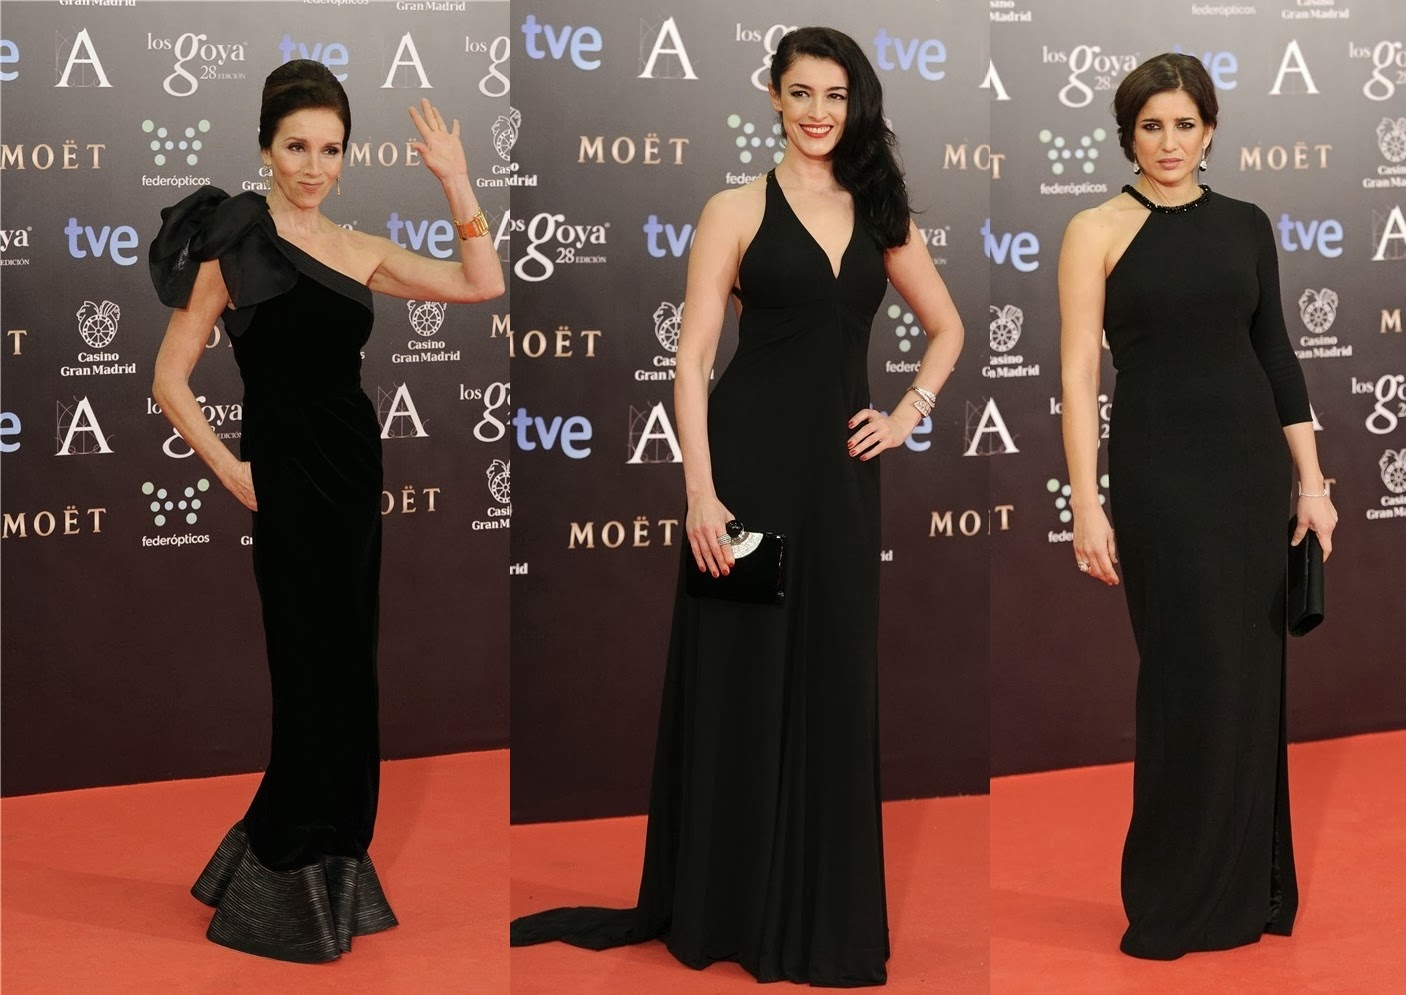 All in one vestidos goya 2014 for Adolfo dominguez goya